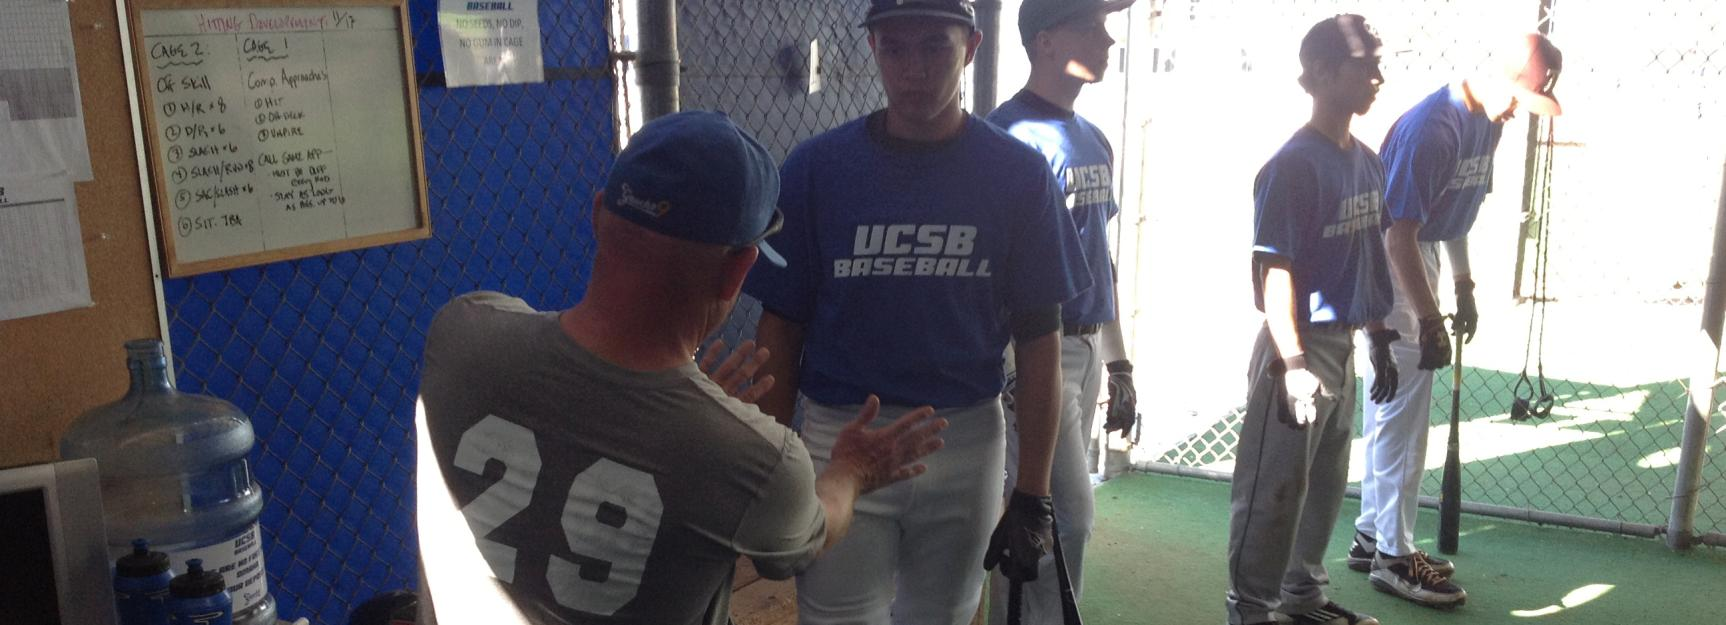 Gaucho Baseball Academy Announces Summer Camps Schedule